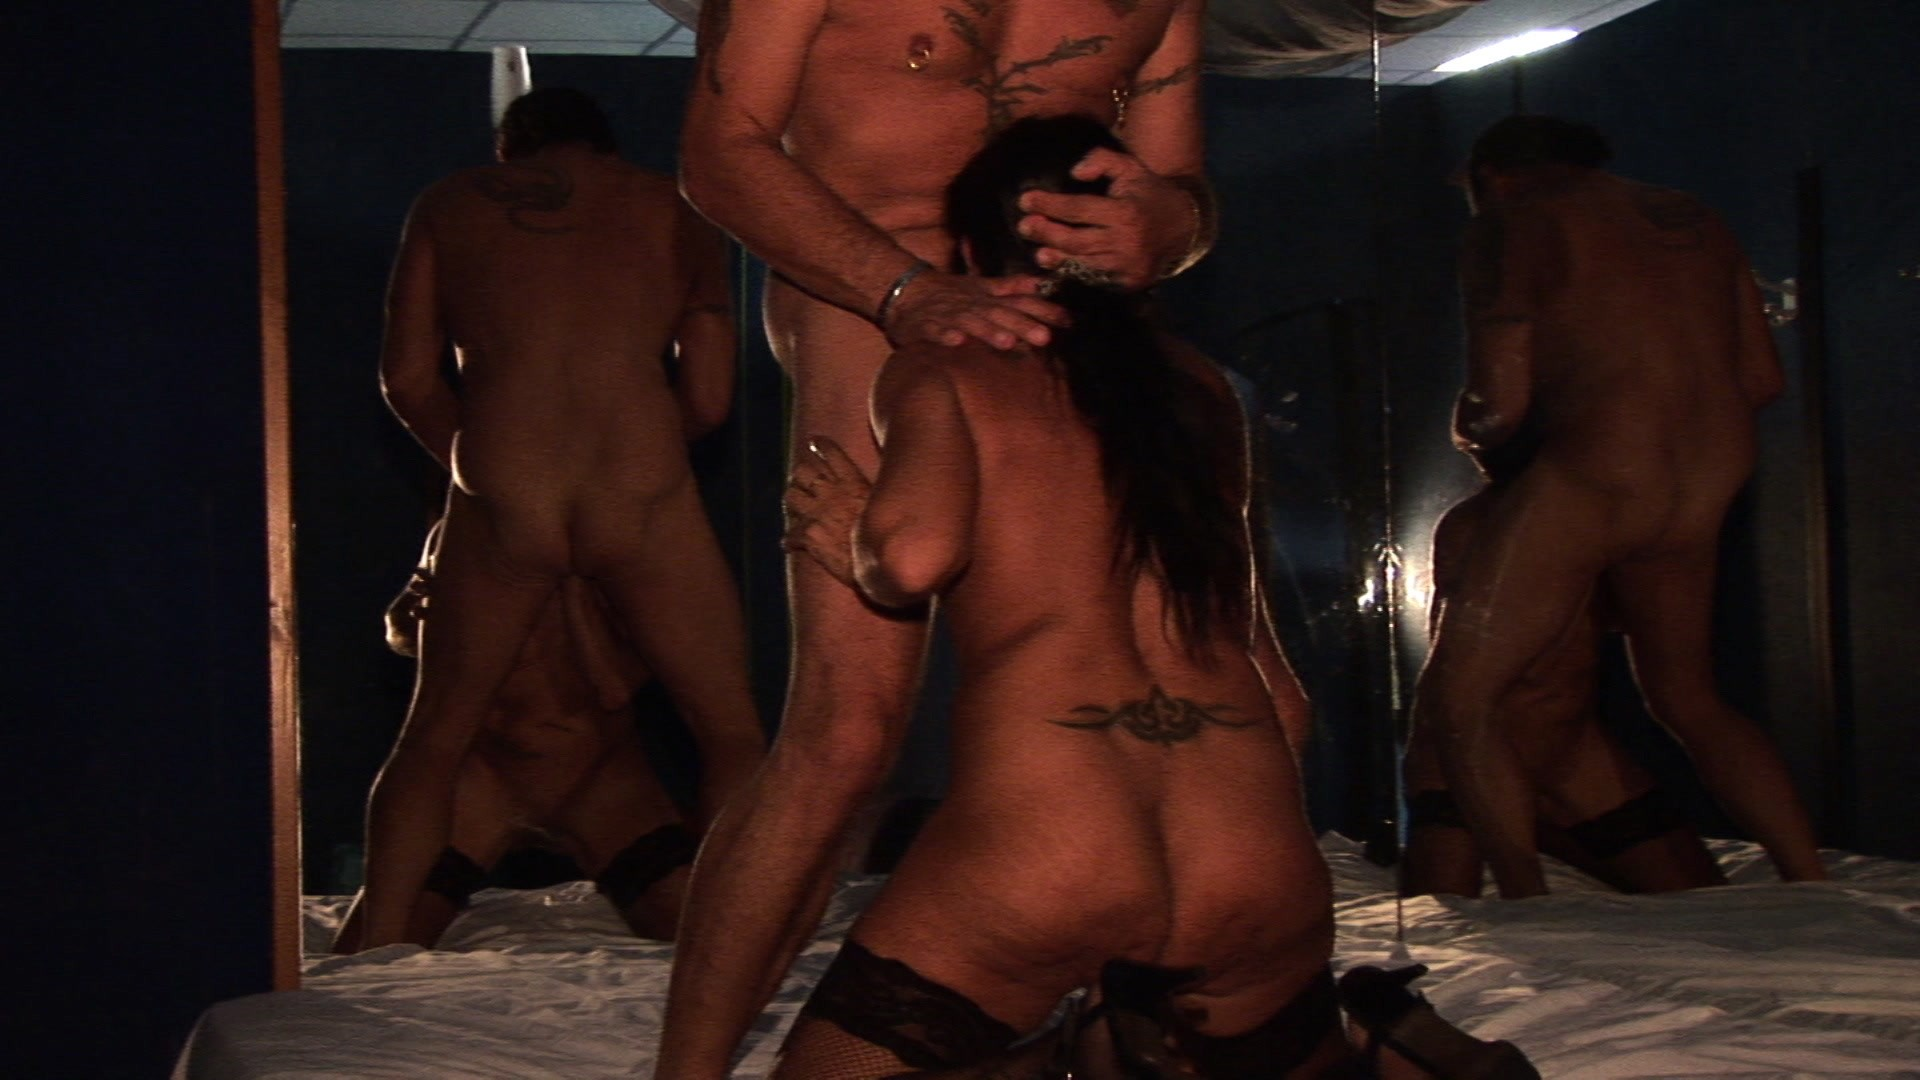 Please suck adult amateur video trailers free just one those